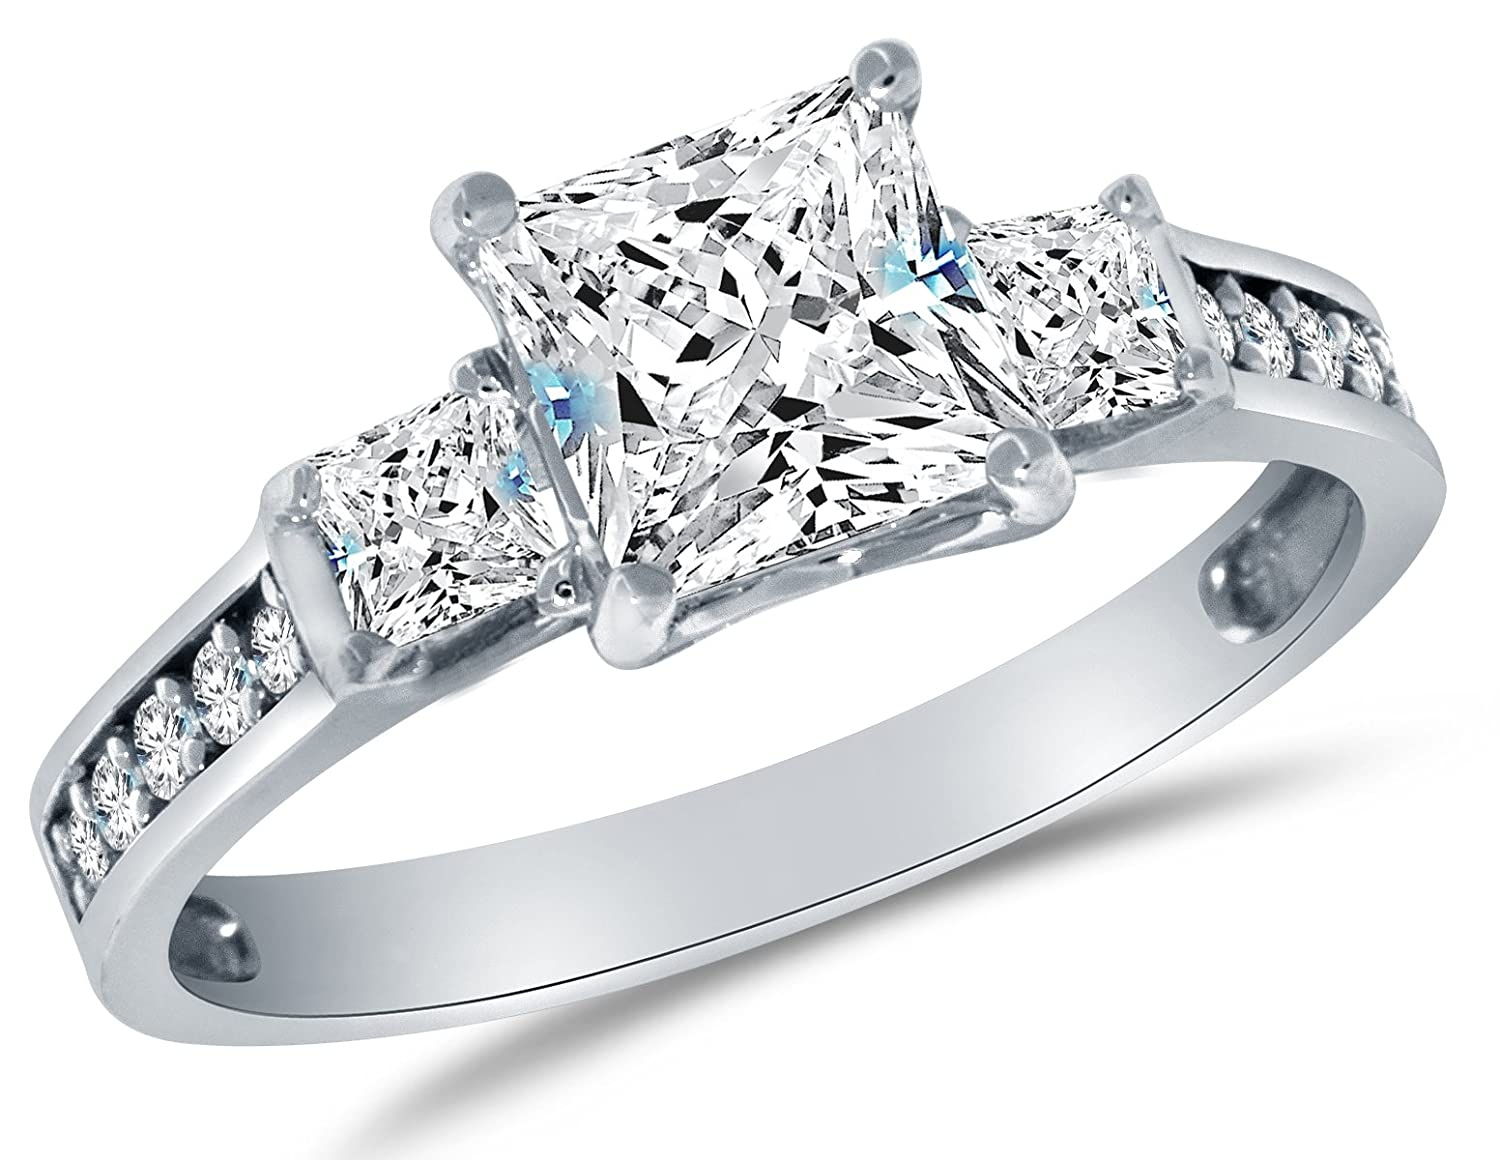 to diamond images an dollar very select can idea hd for and most emwwyef background get you million set rings engagement expensive promise on as also pc new mobile your ring wedding or